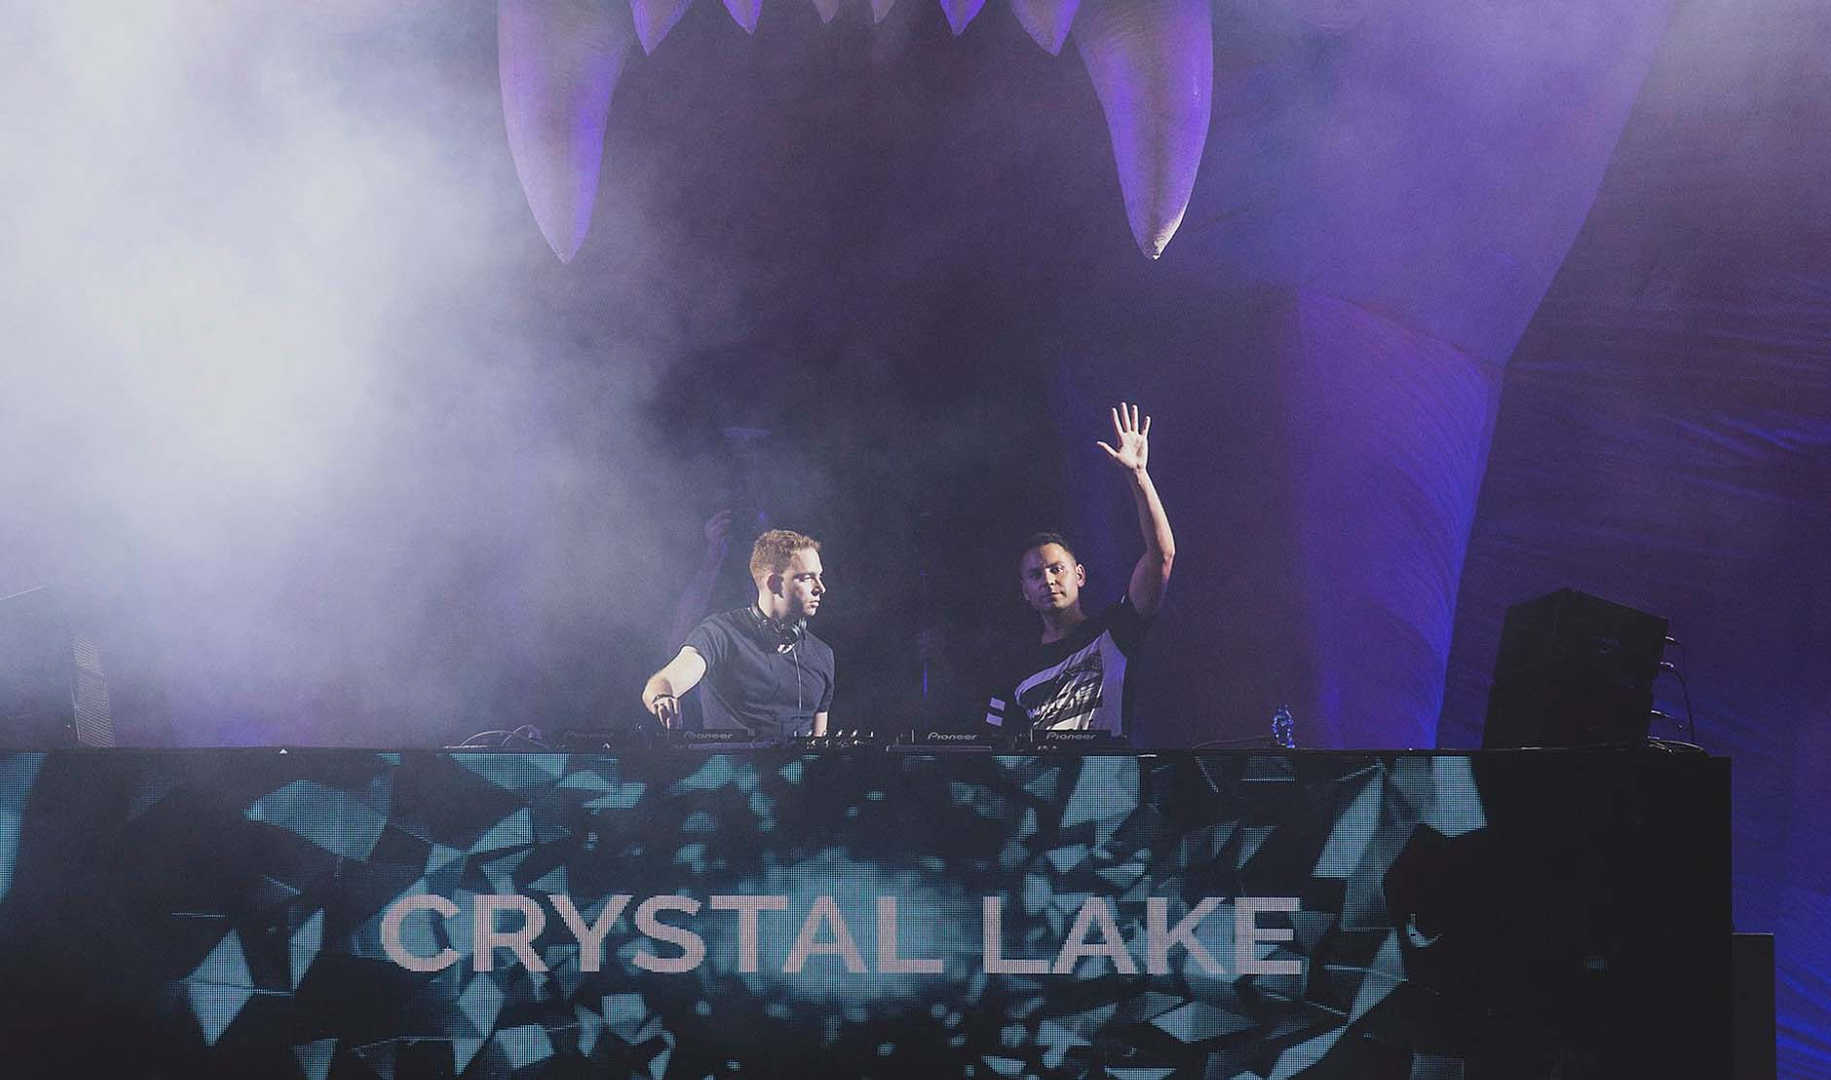 Crystal Lake Live at Life In Color